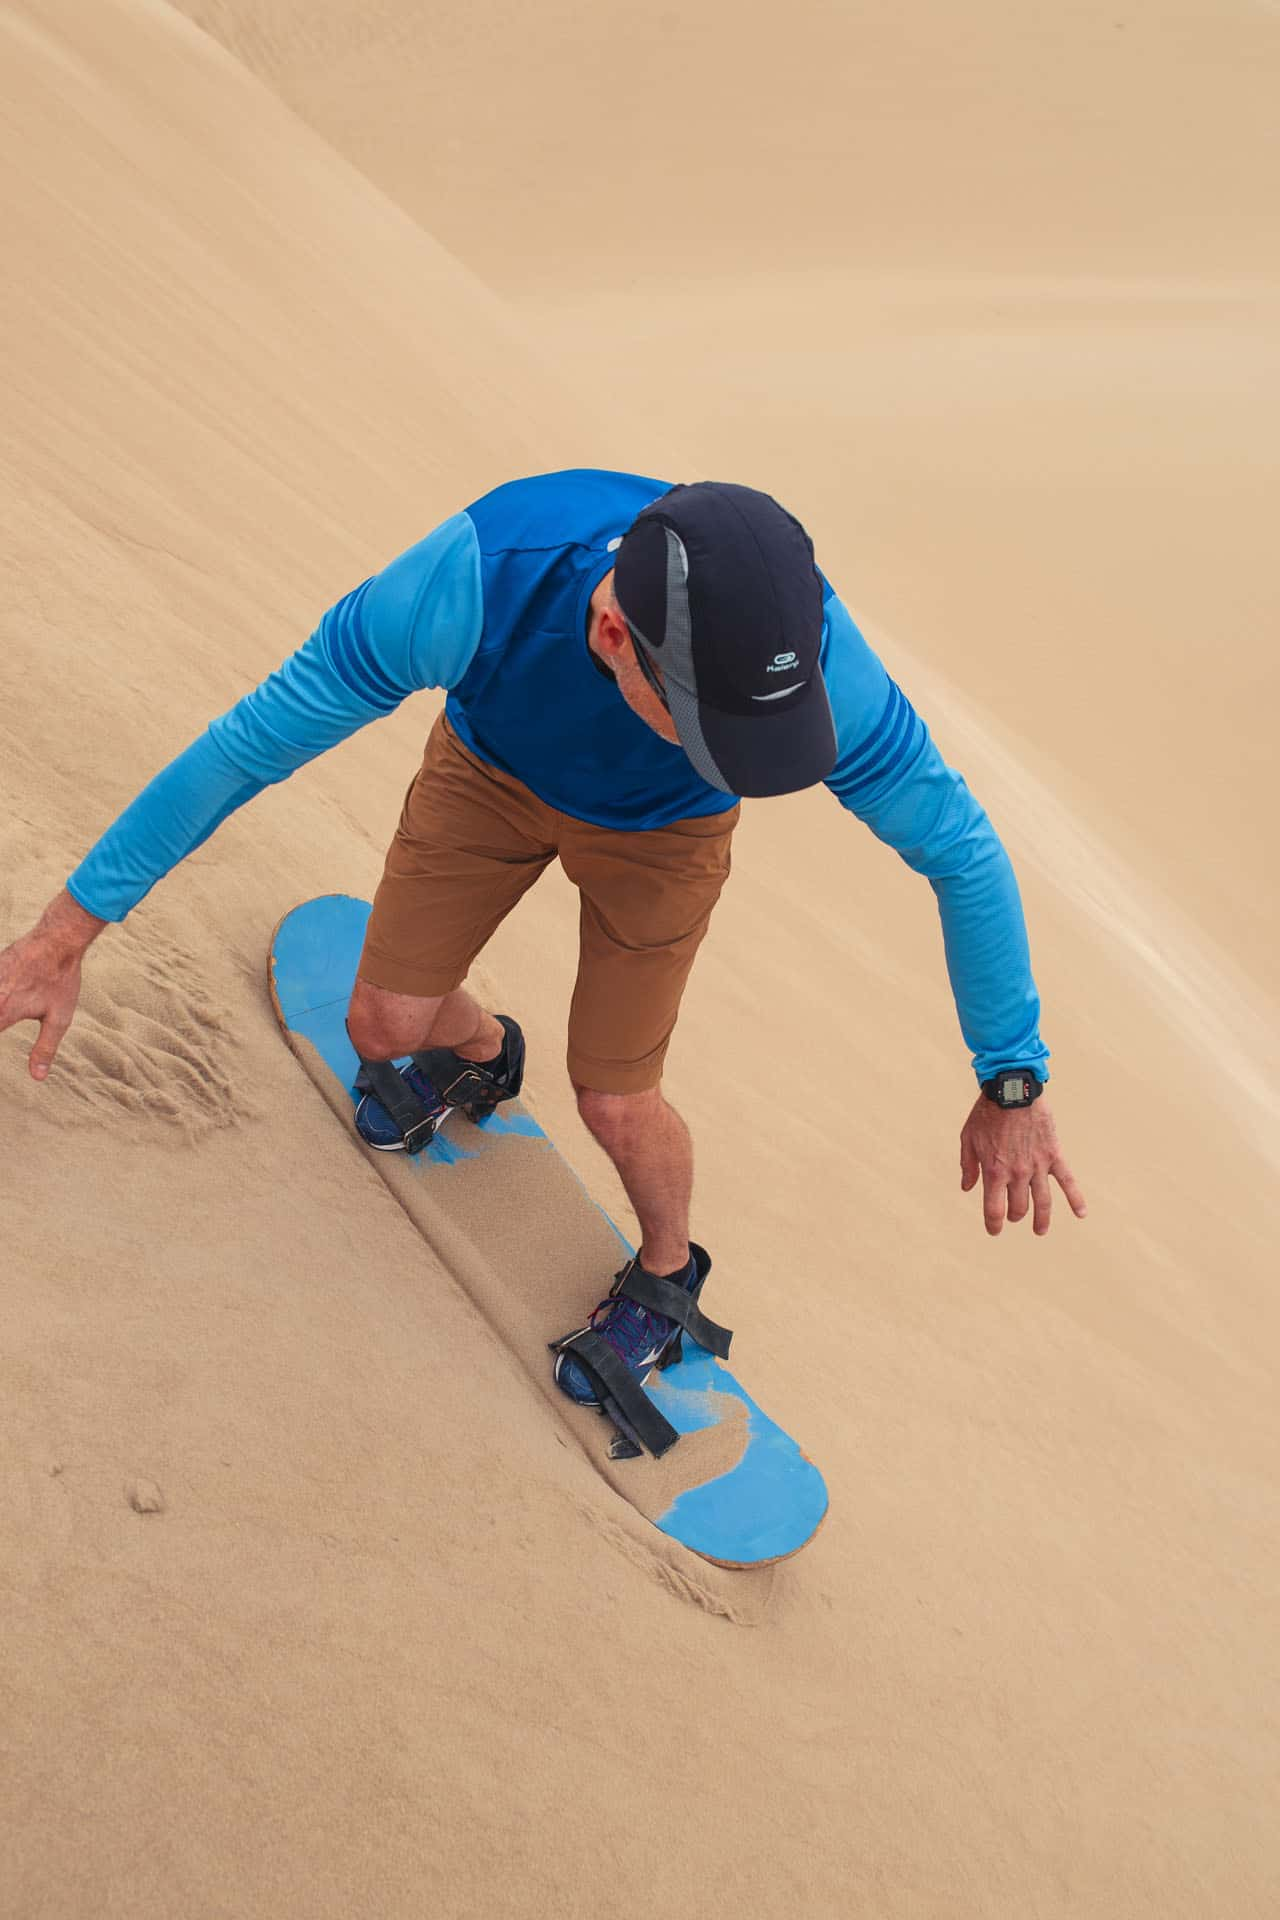 learning to sandboard in peru